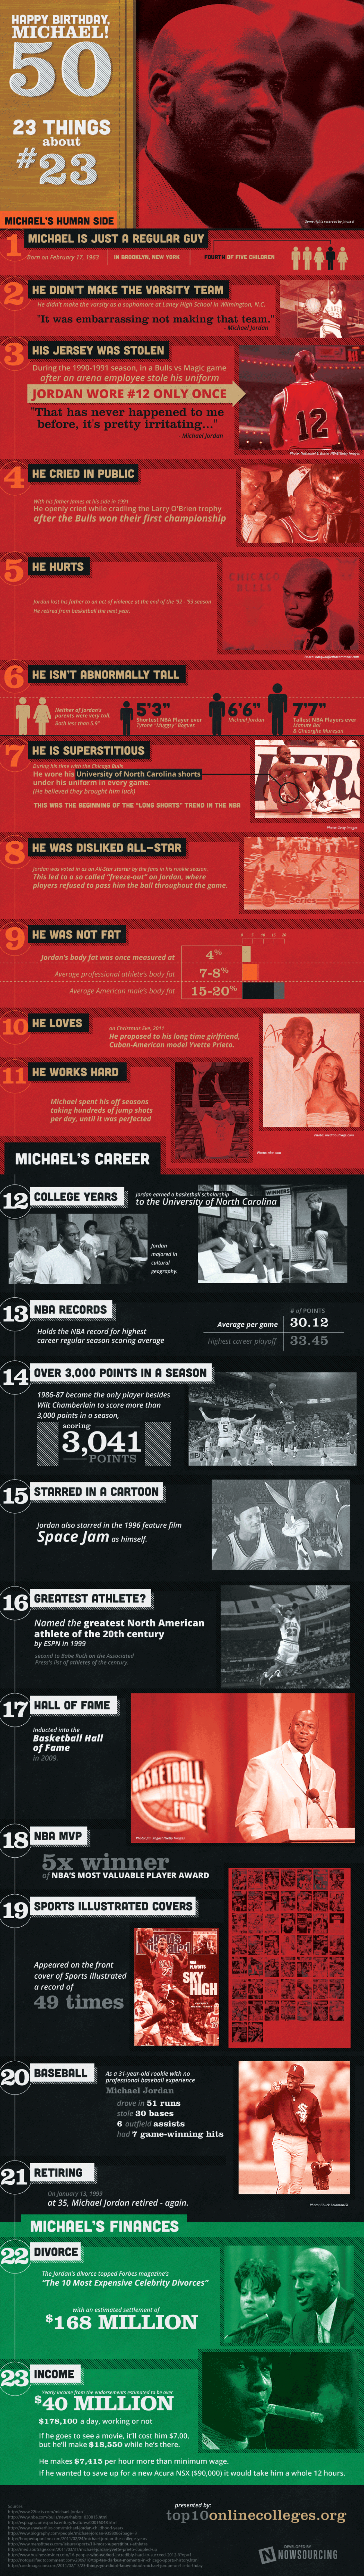 Happy Birthday Michael! 23 Things about #23 Infographic